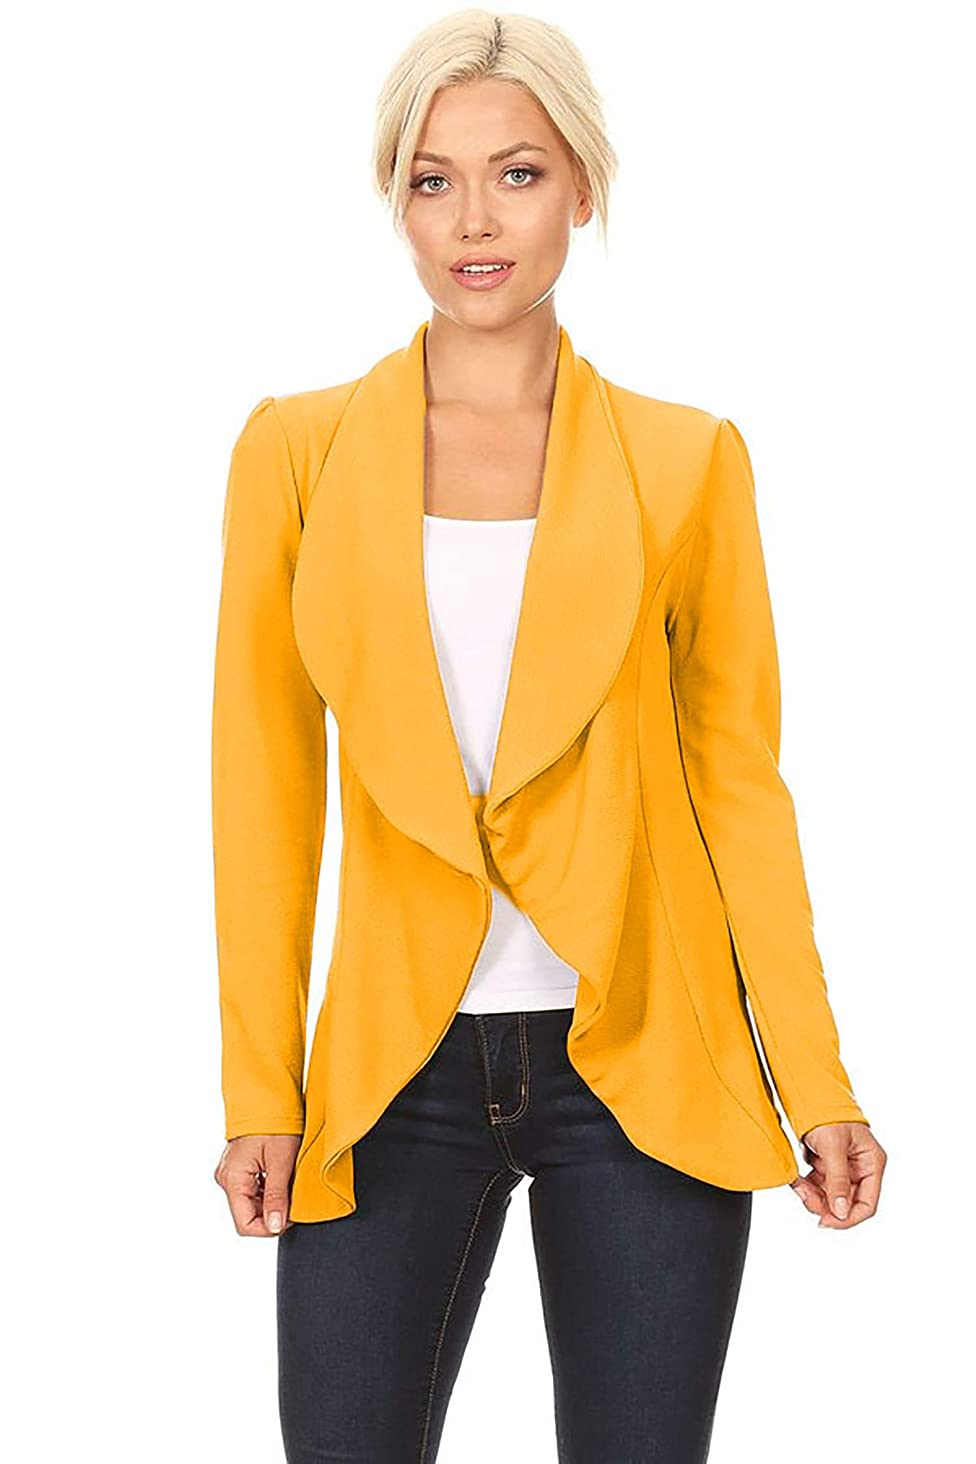 Women's Solid Print Casual Long Sleeves Stretch Open Front Blazer Jacket/Made in USA